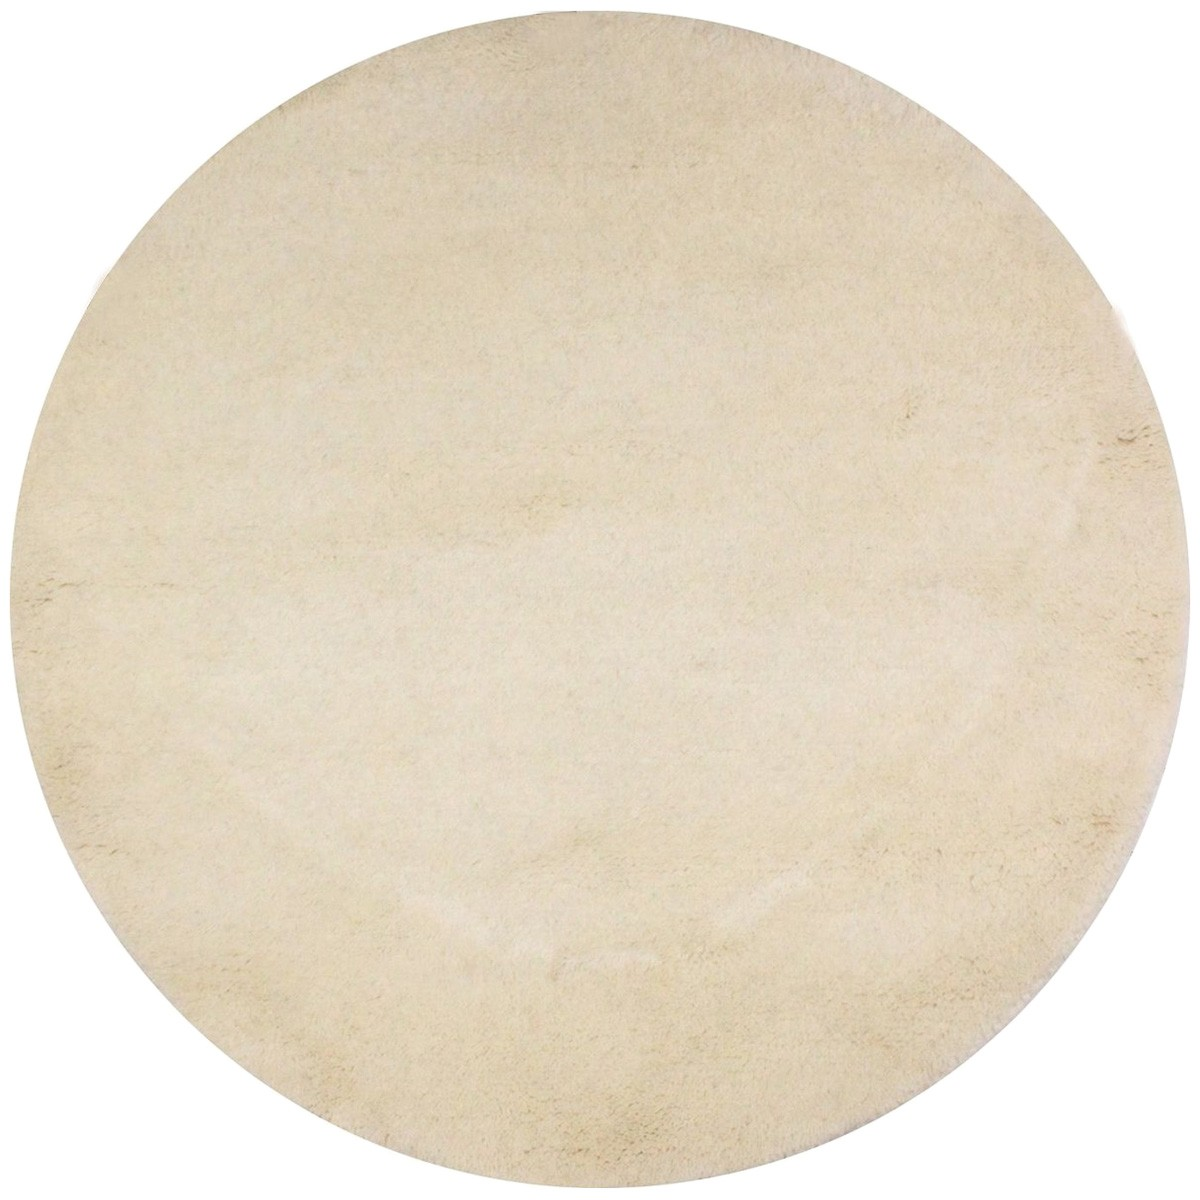 Everest Hand Knotted Round Wool Rug, 244cm